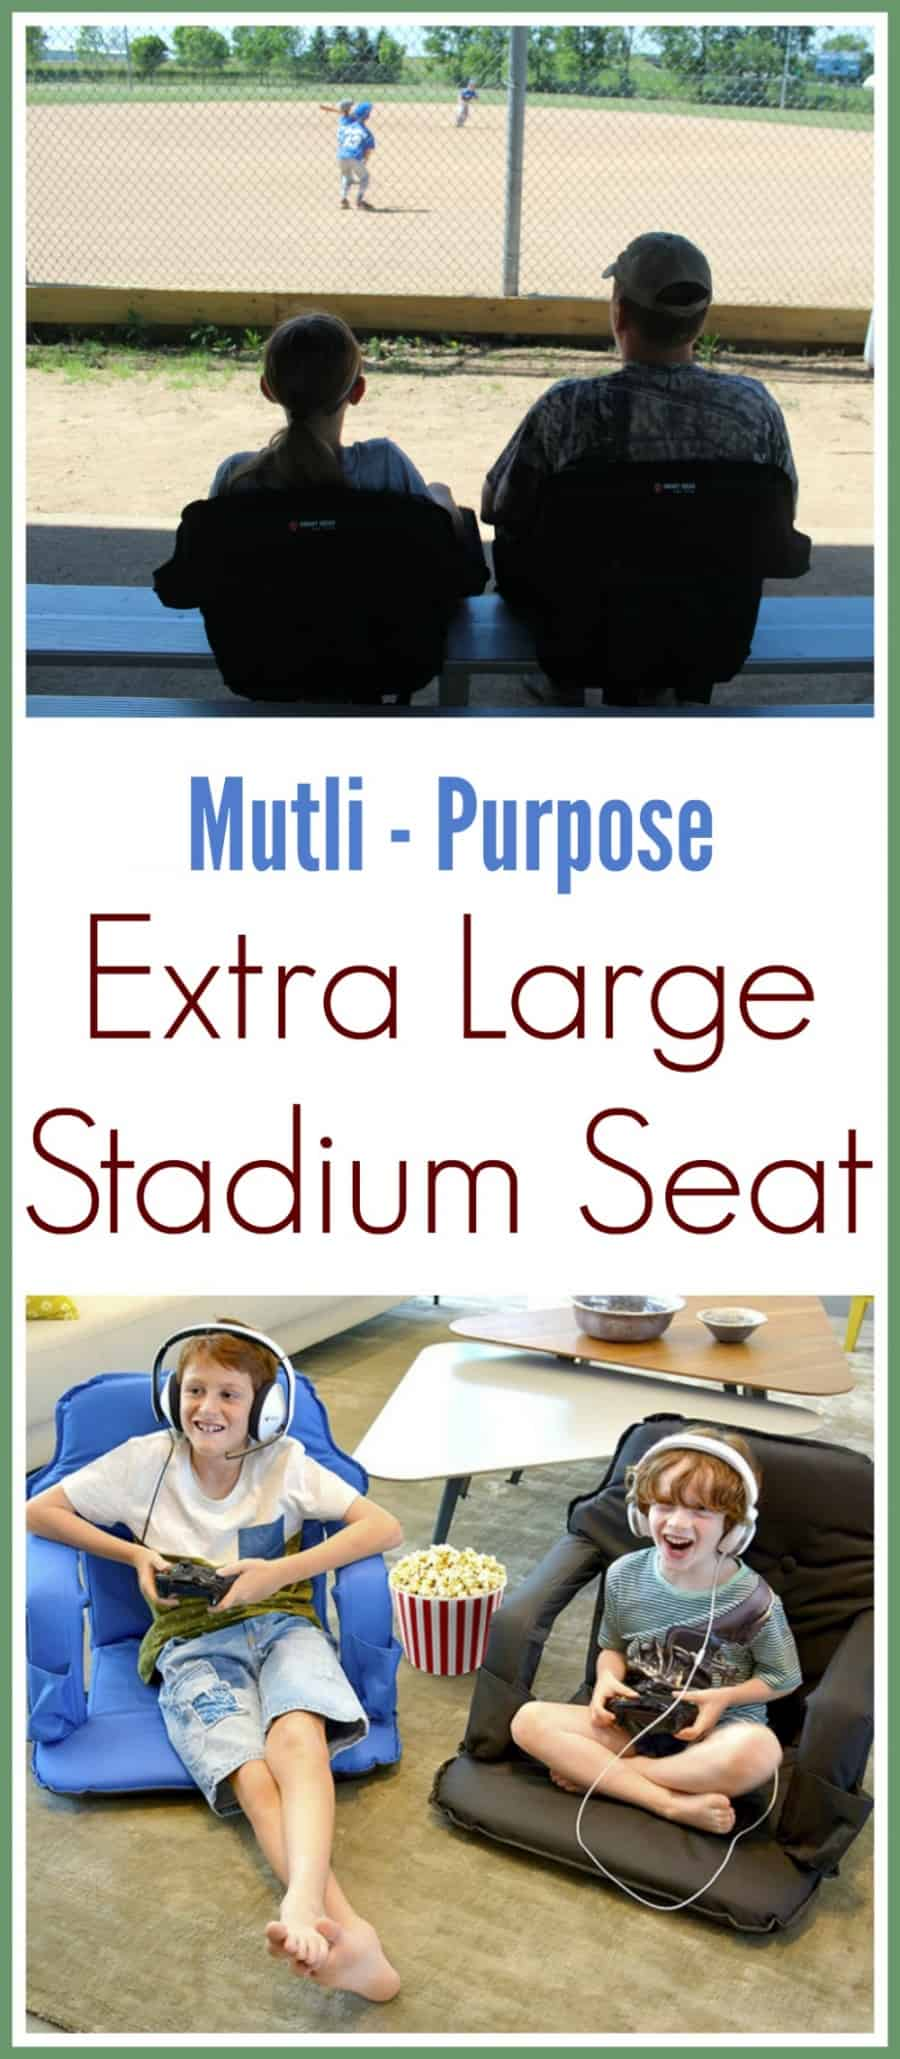 Extra Large Stadium Seat - Perfect for games, beach, gameroom, lawn, & everywhere!